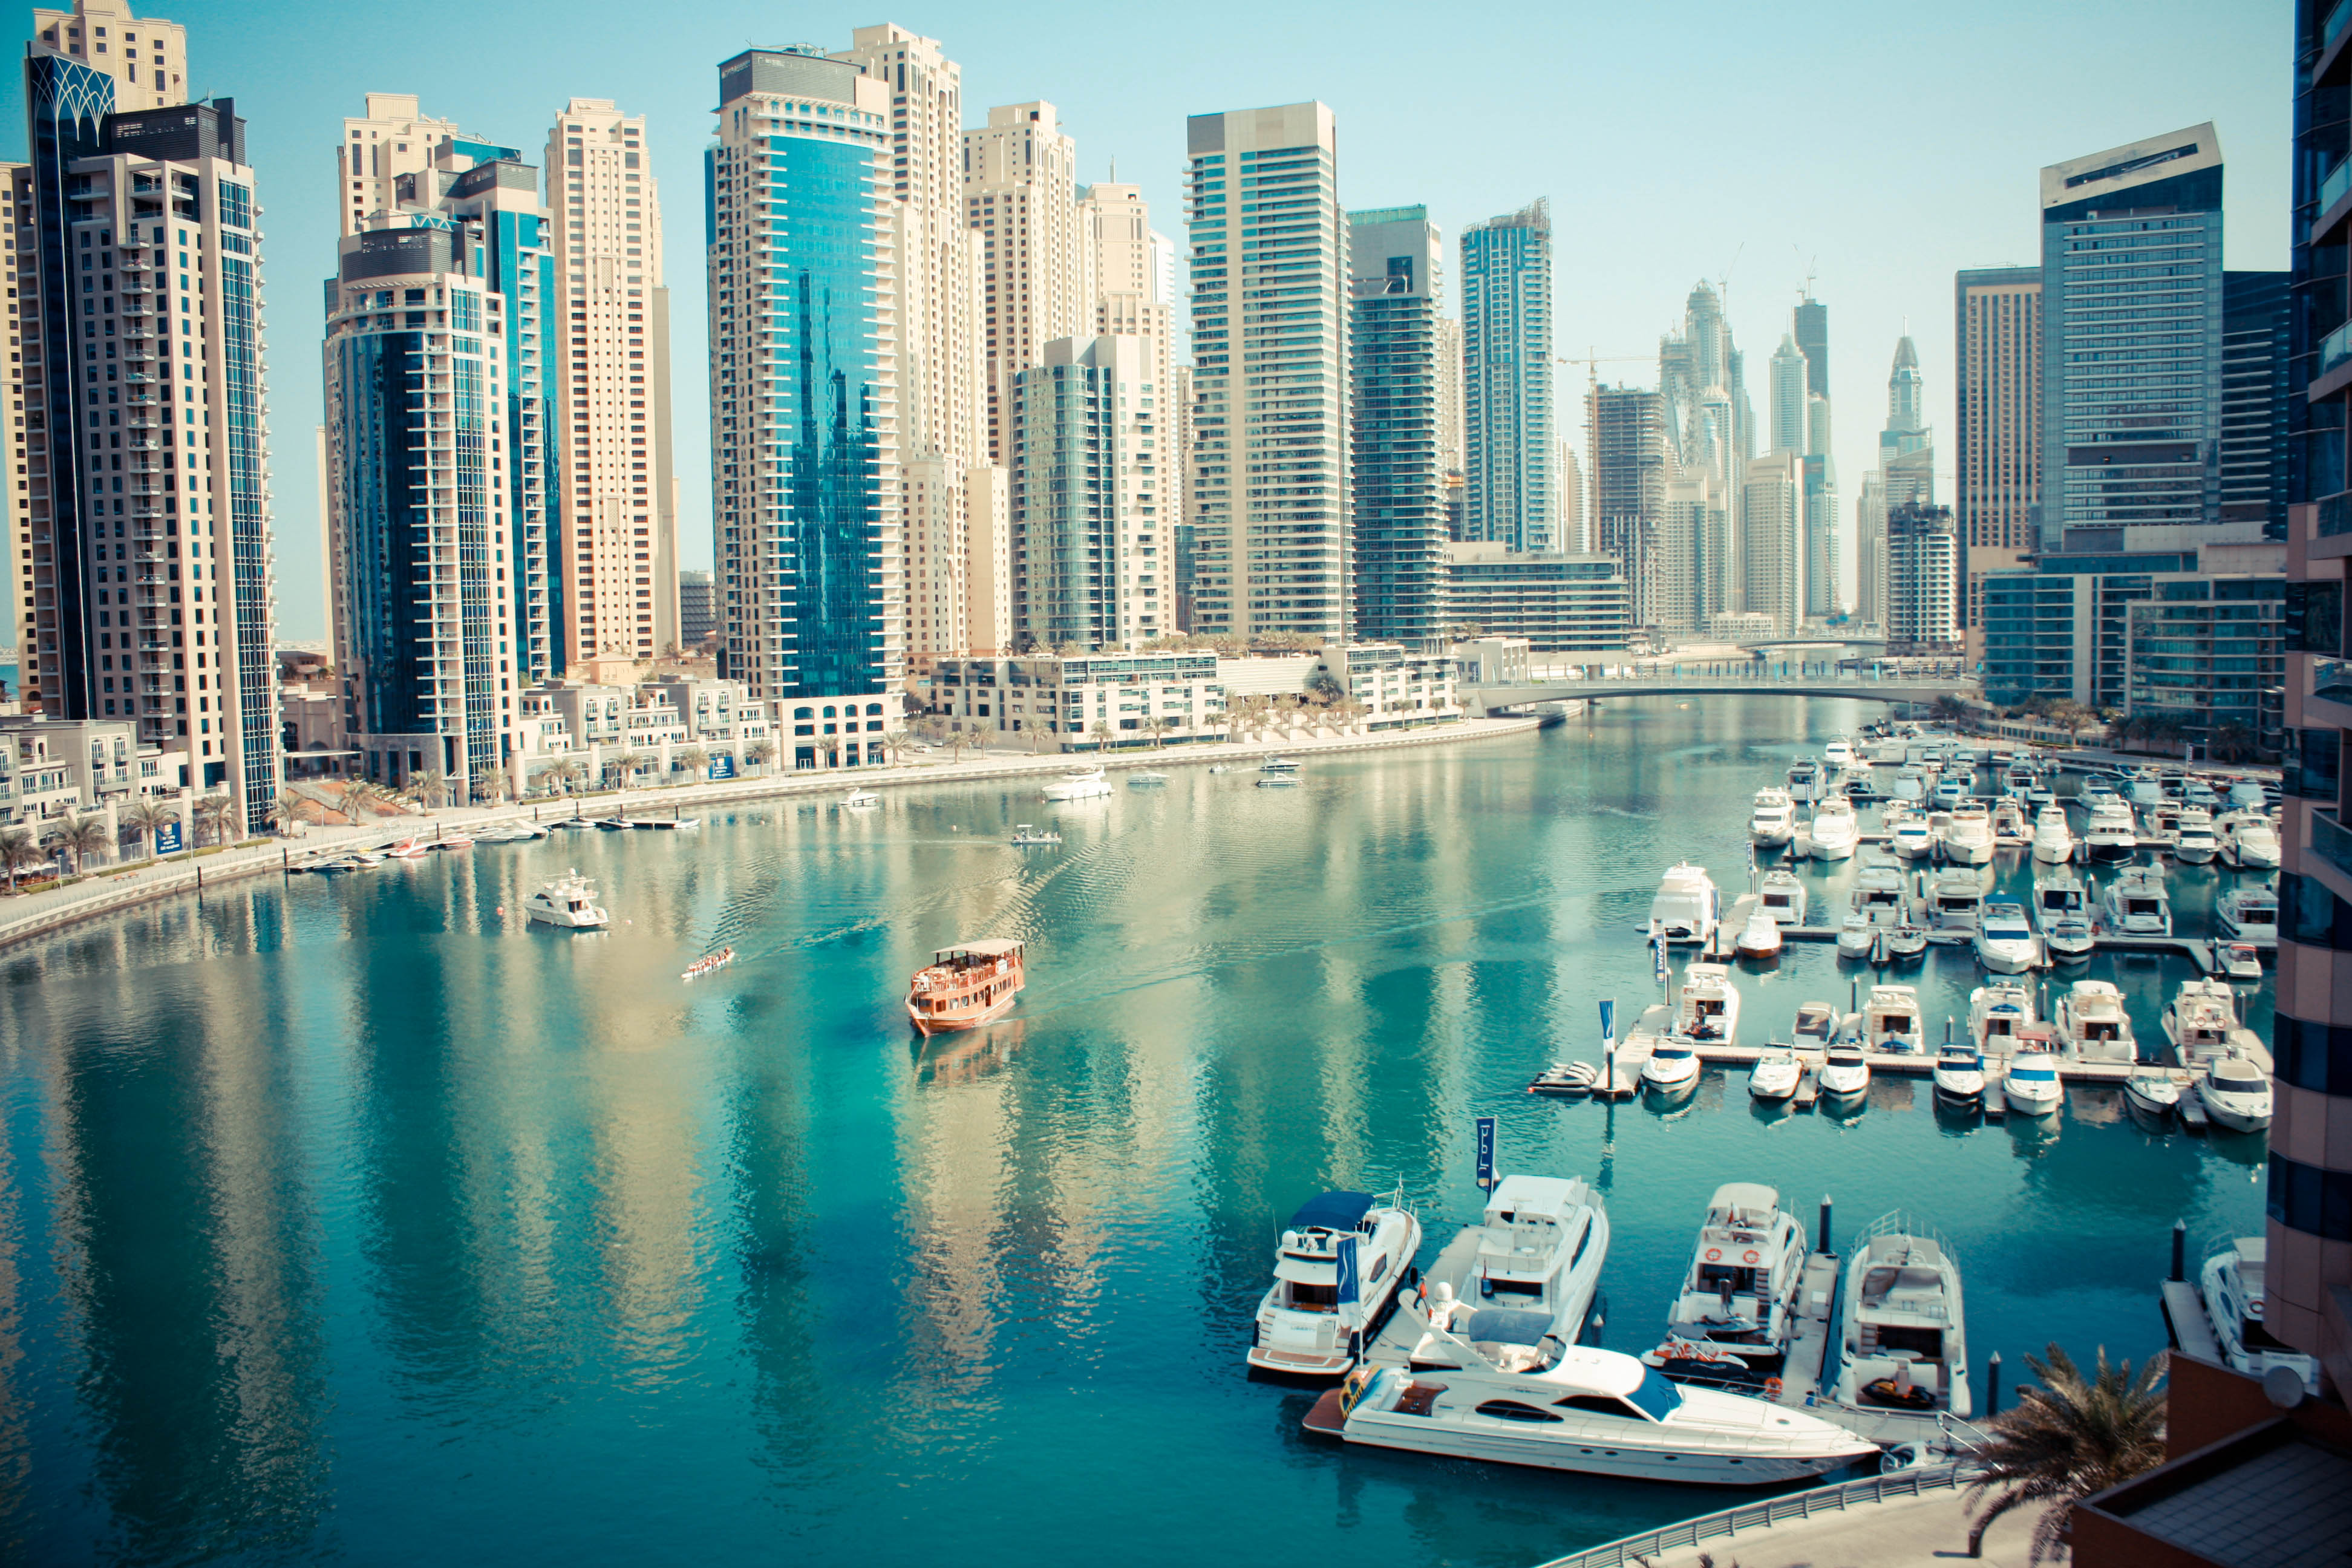 Dubai, United Arab Emirates - Marina.jpg